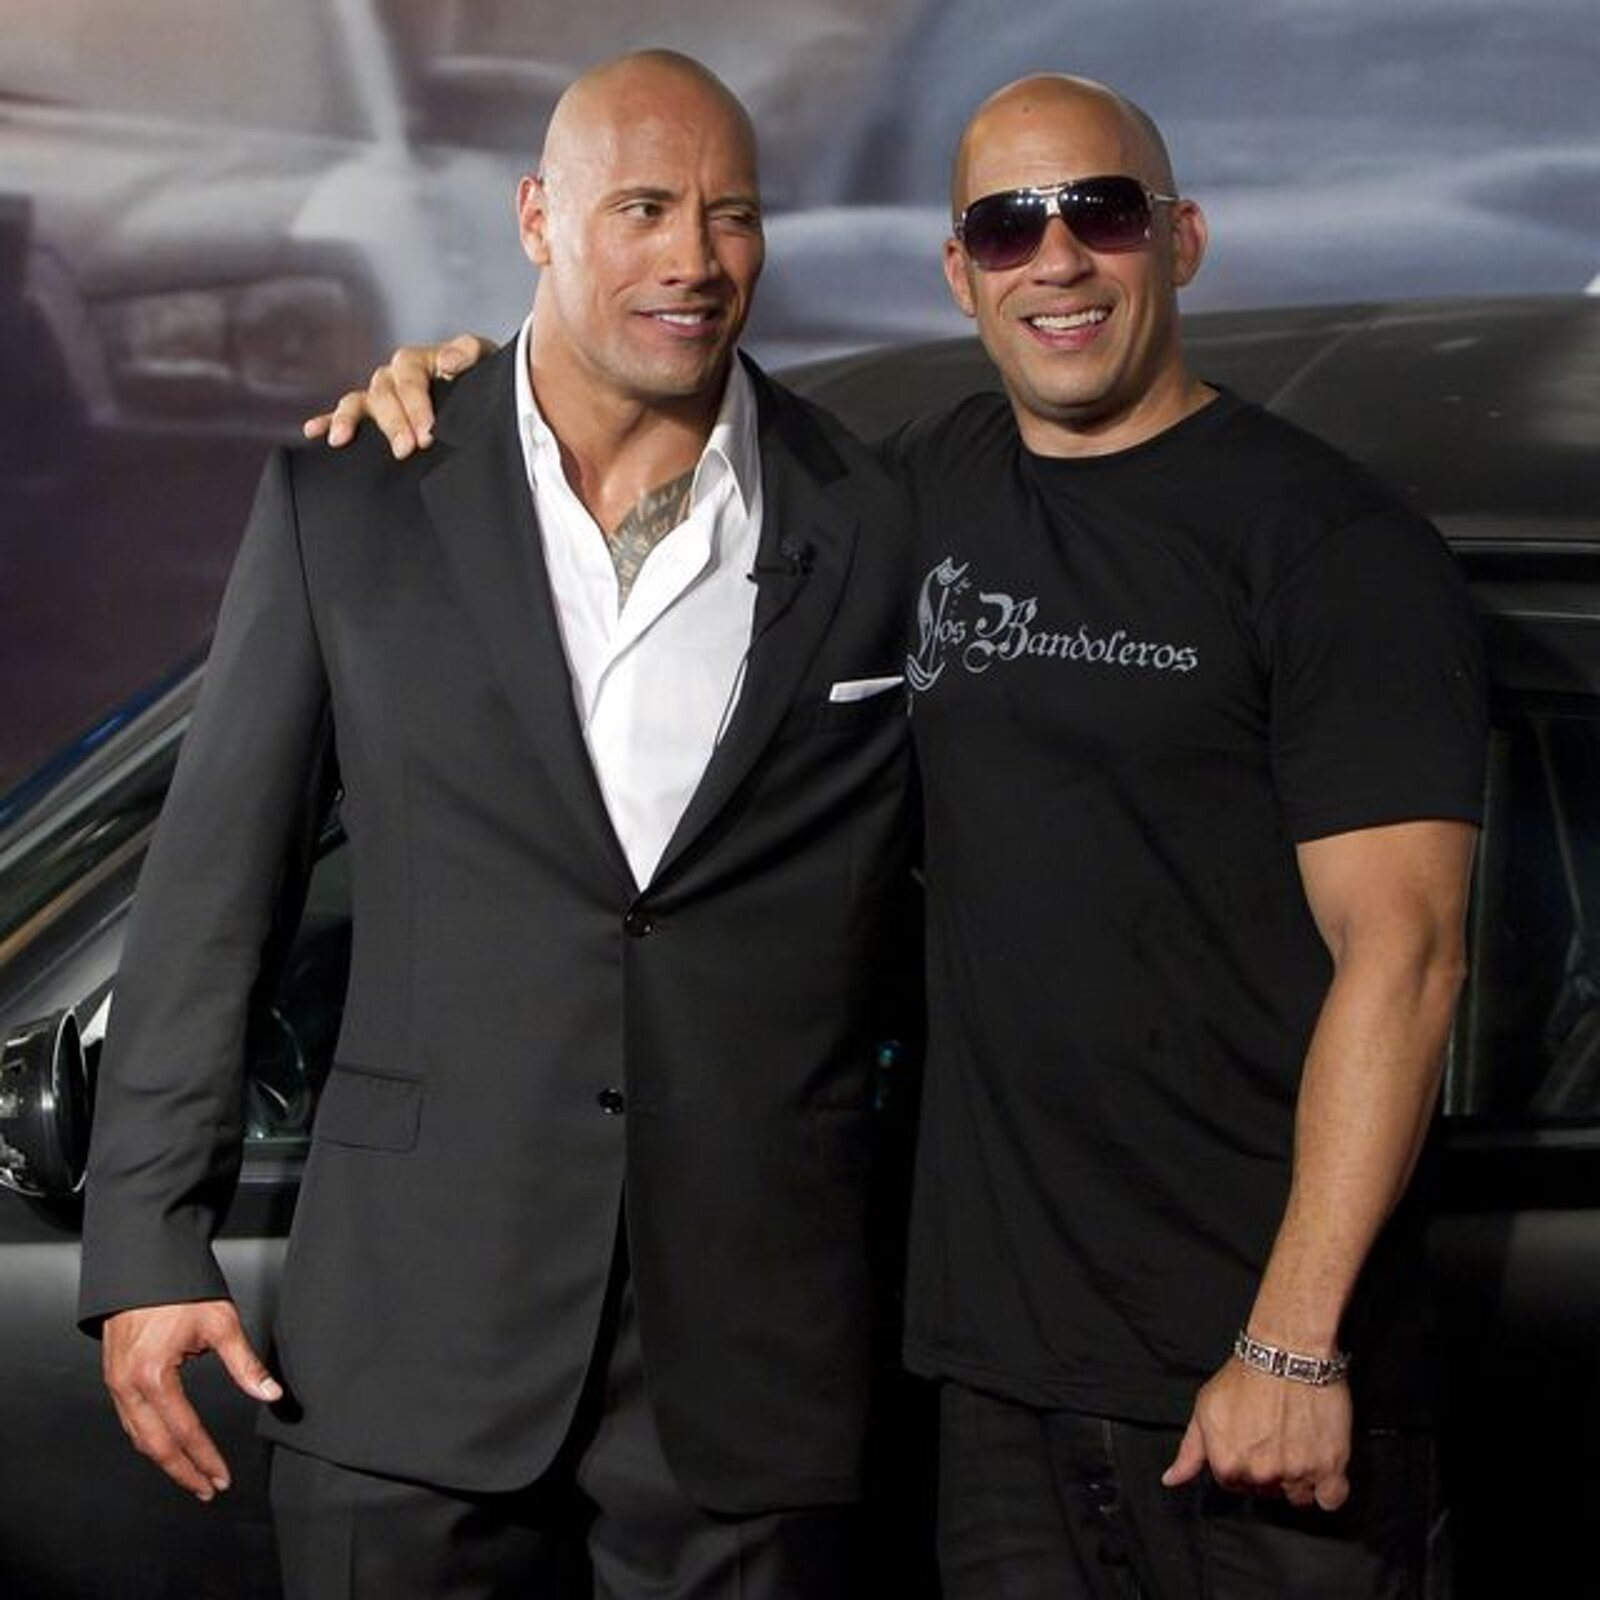 """Vin Diesel had to apply """"heavy hand"""" with Dwayne Johnson in 'Fast and Furious'"""